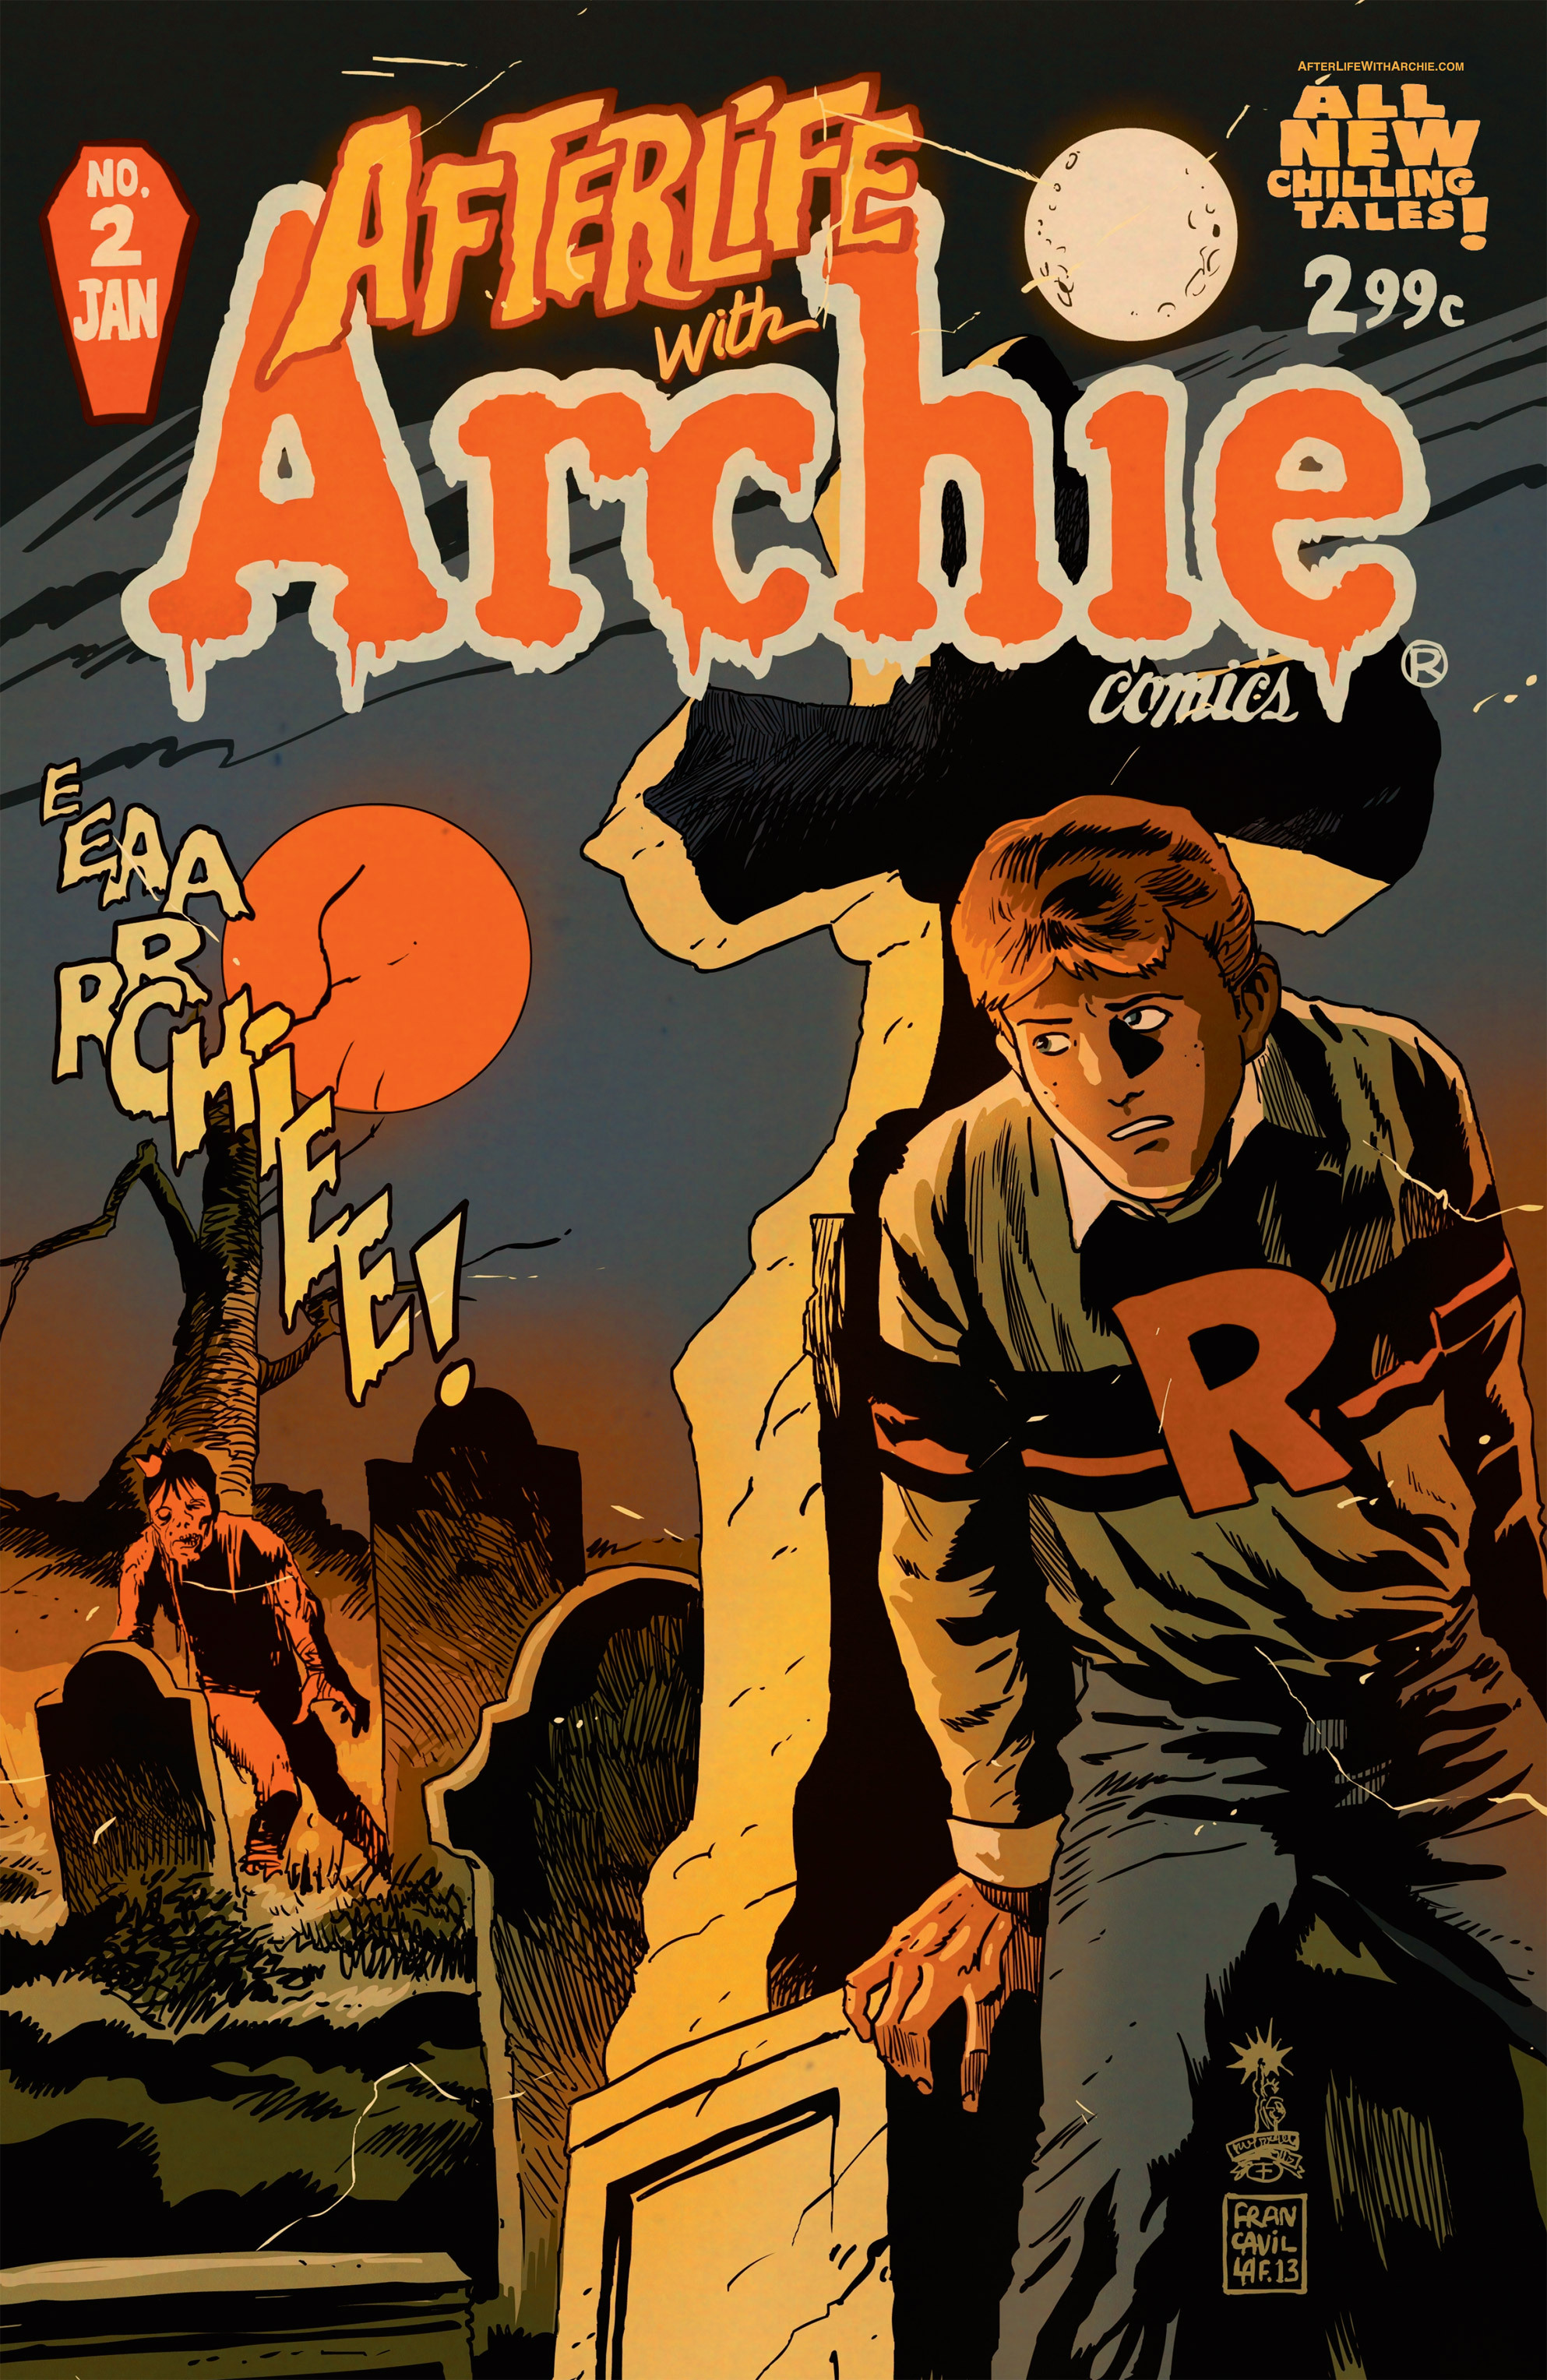 Read online Afterlife with Archie comic -  Issue #2 - 1